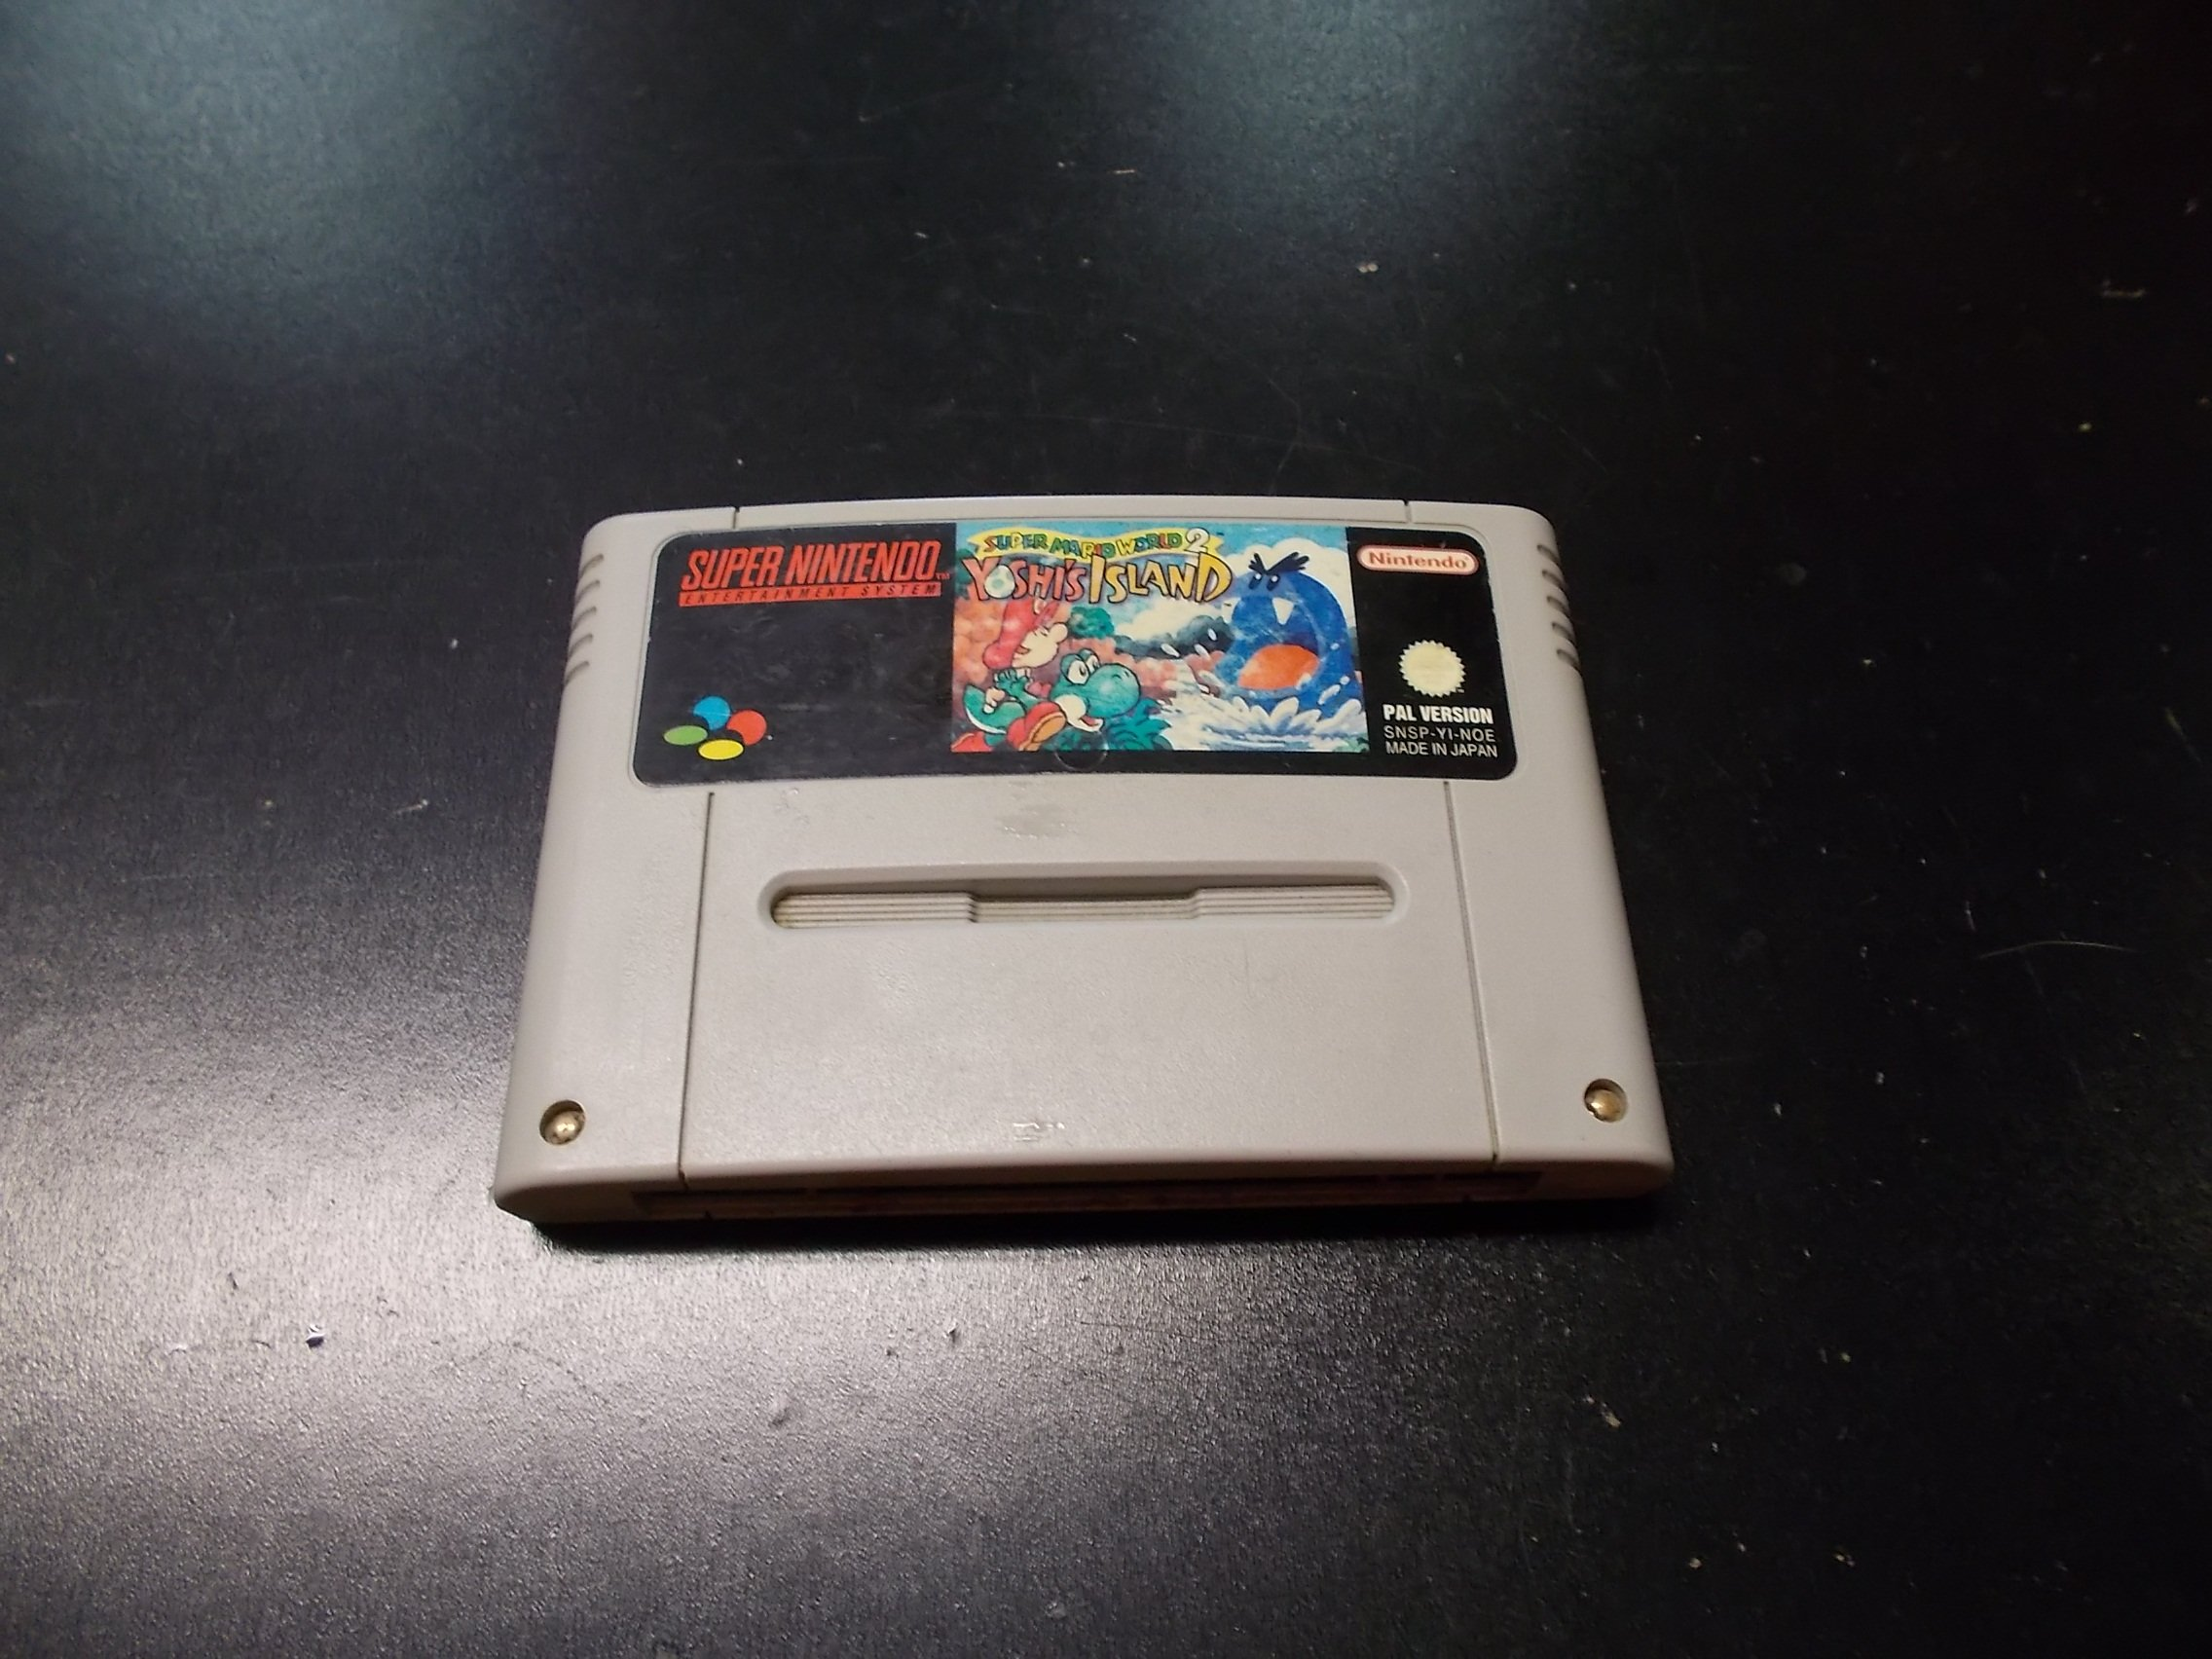 Super Mario World 2 - GRA SUPER NINTENDO SNES Sklep ALFA Opole 0227